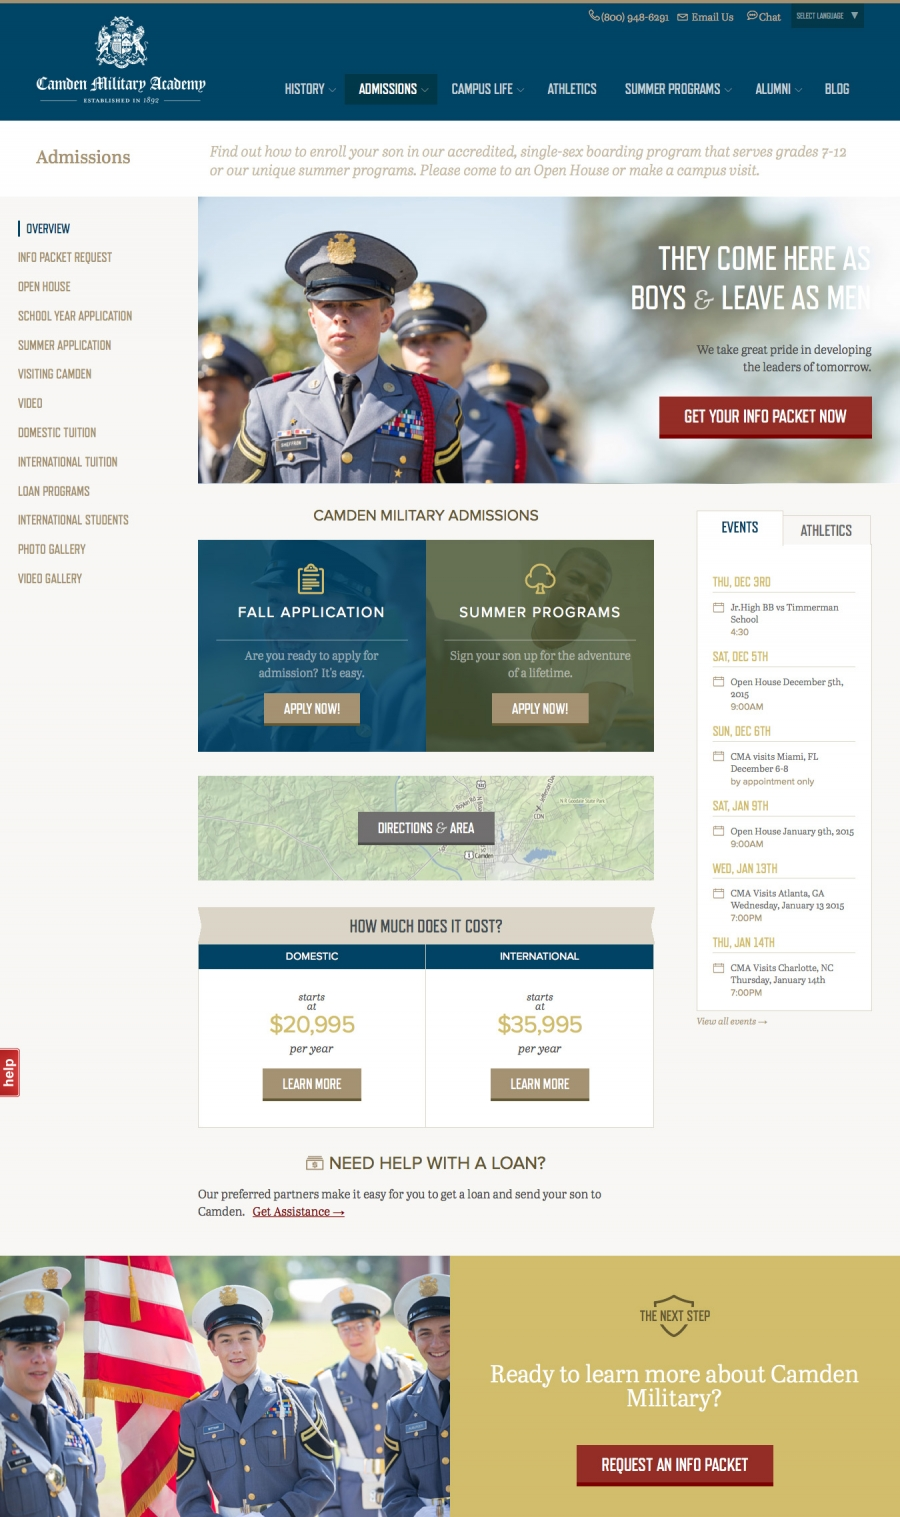 Camden Military Admissions